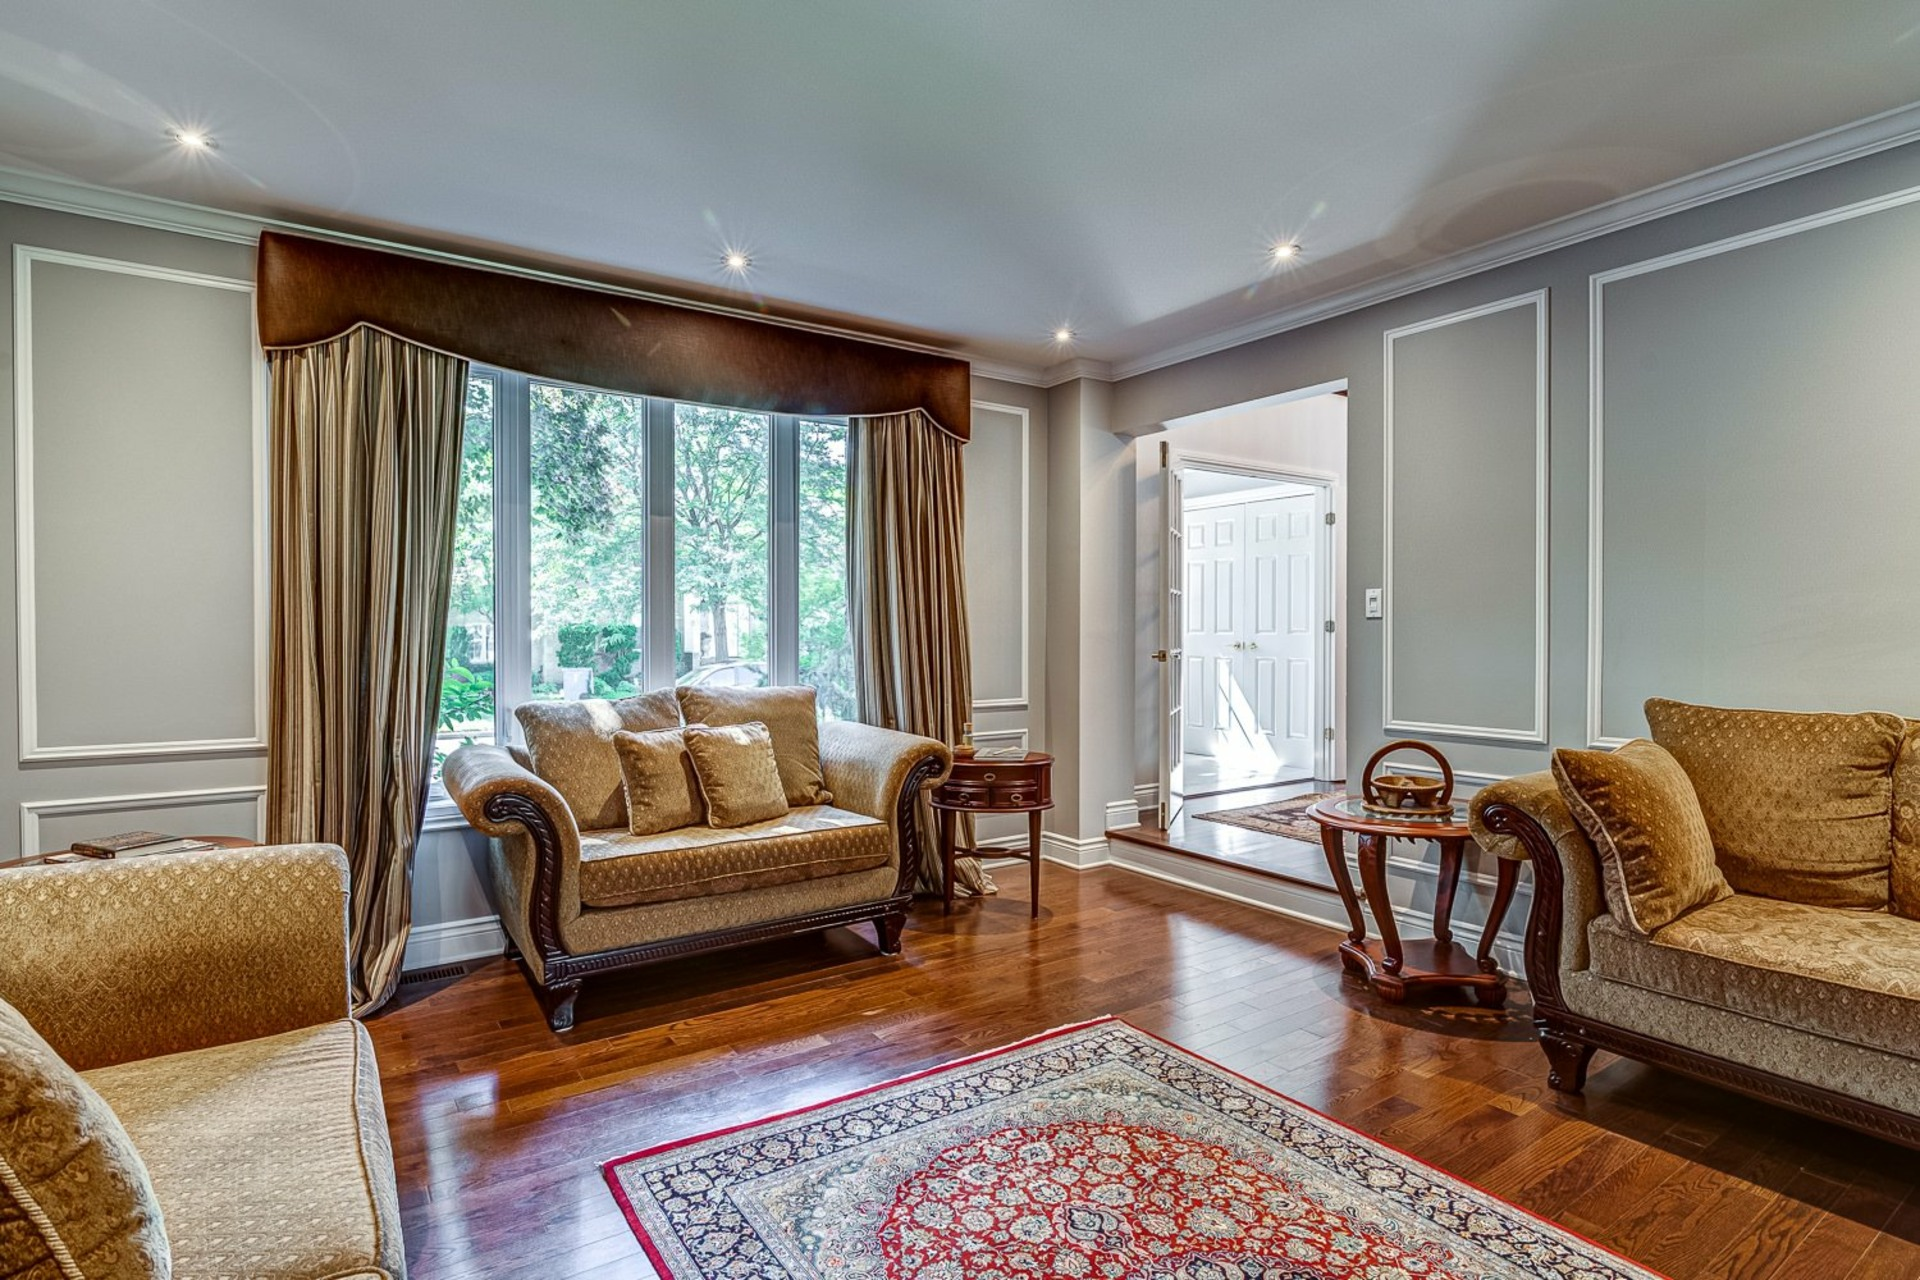 image 3 - House For sale Beaconsfield - 11 rooms